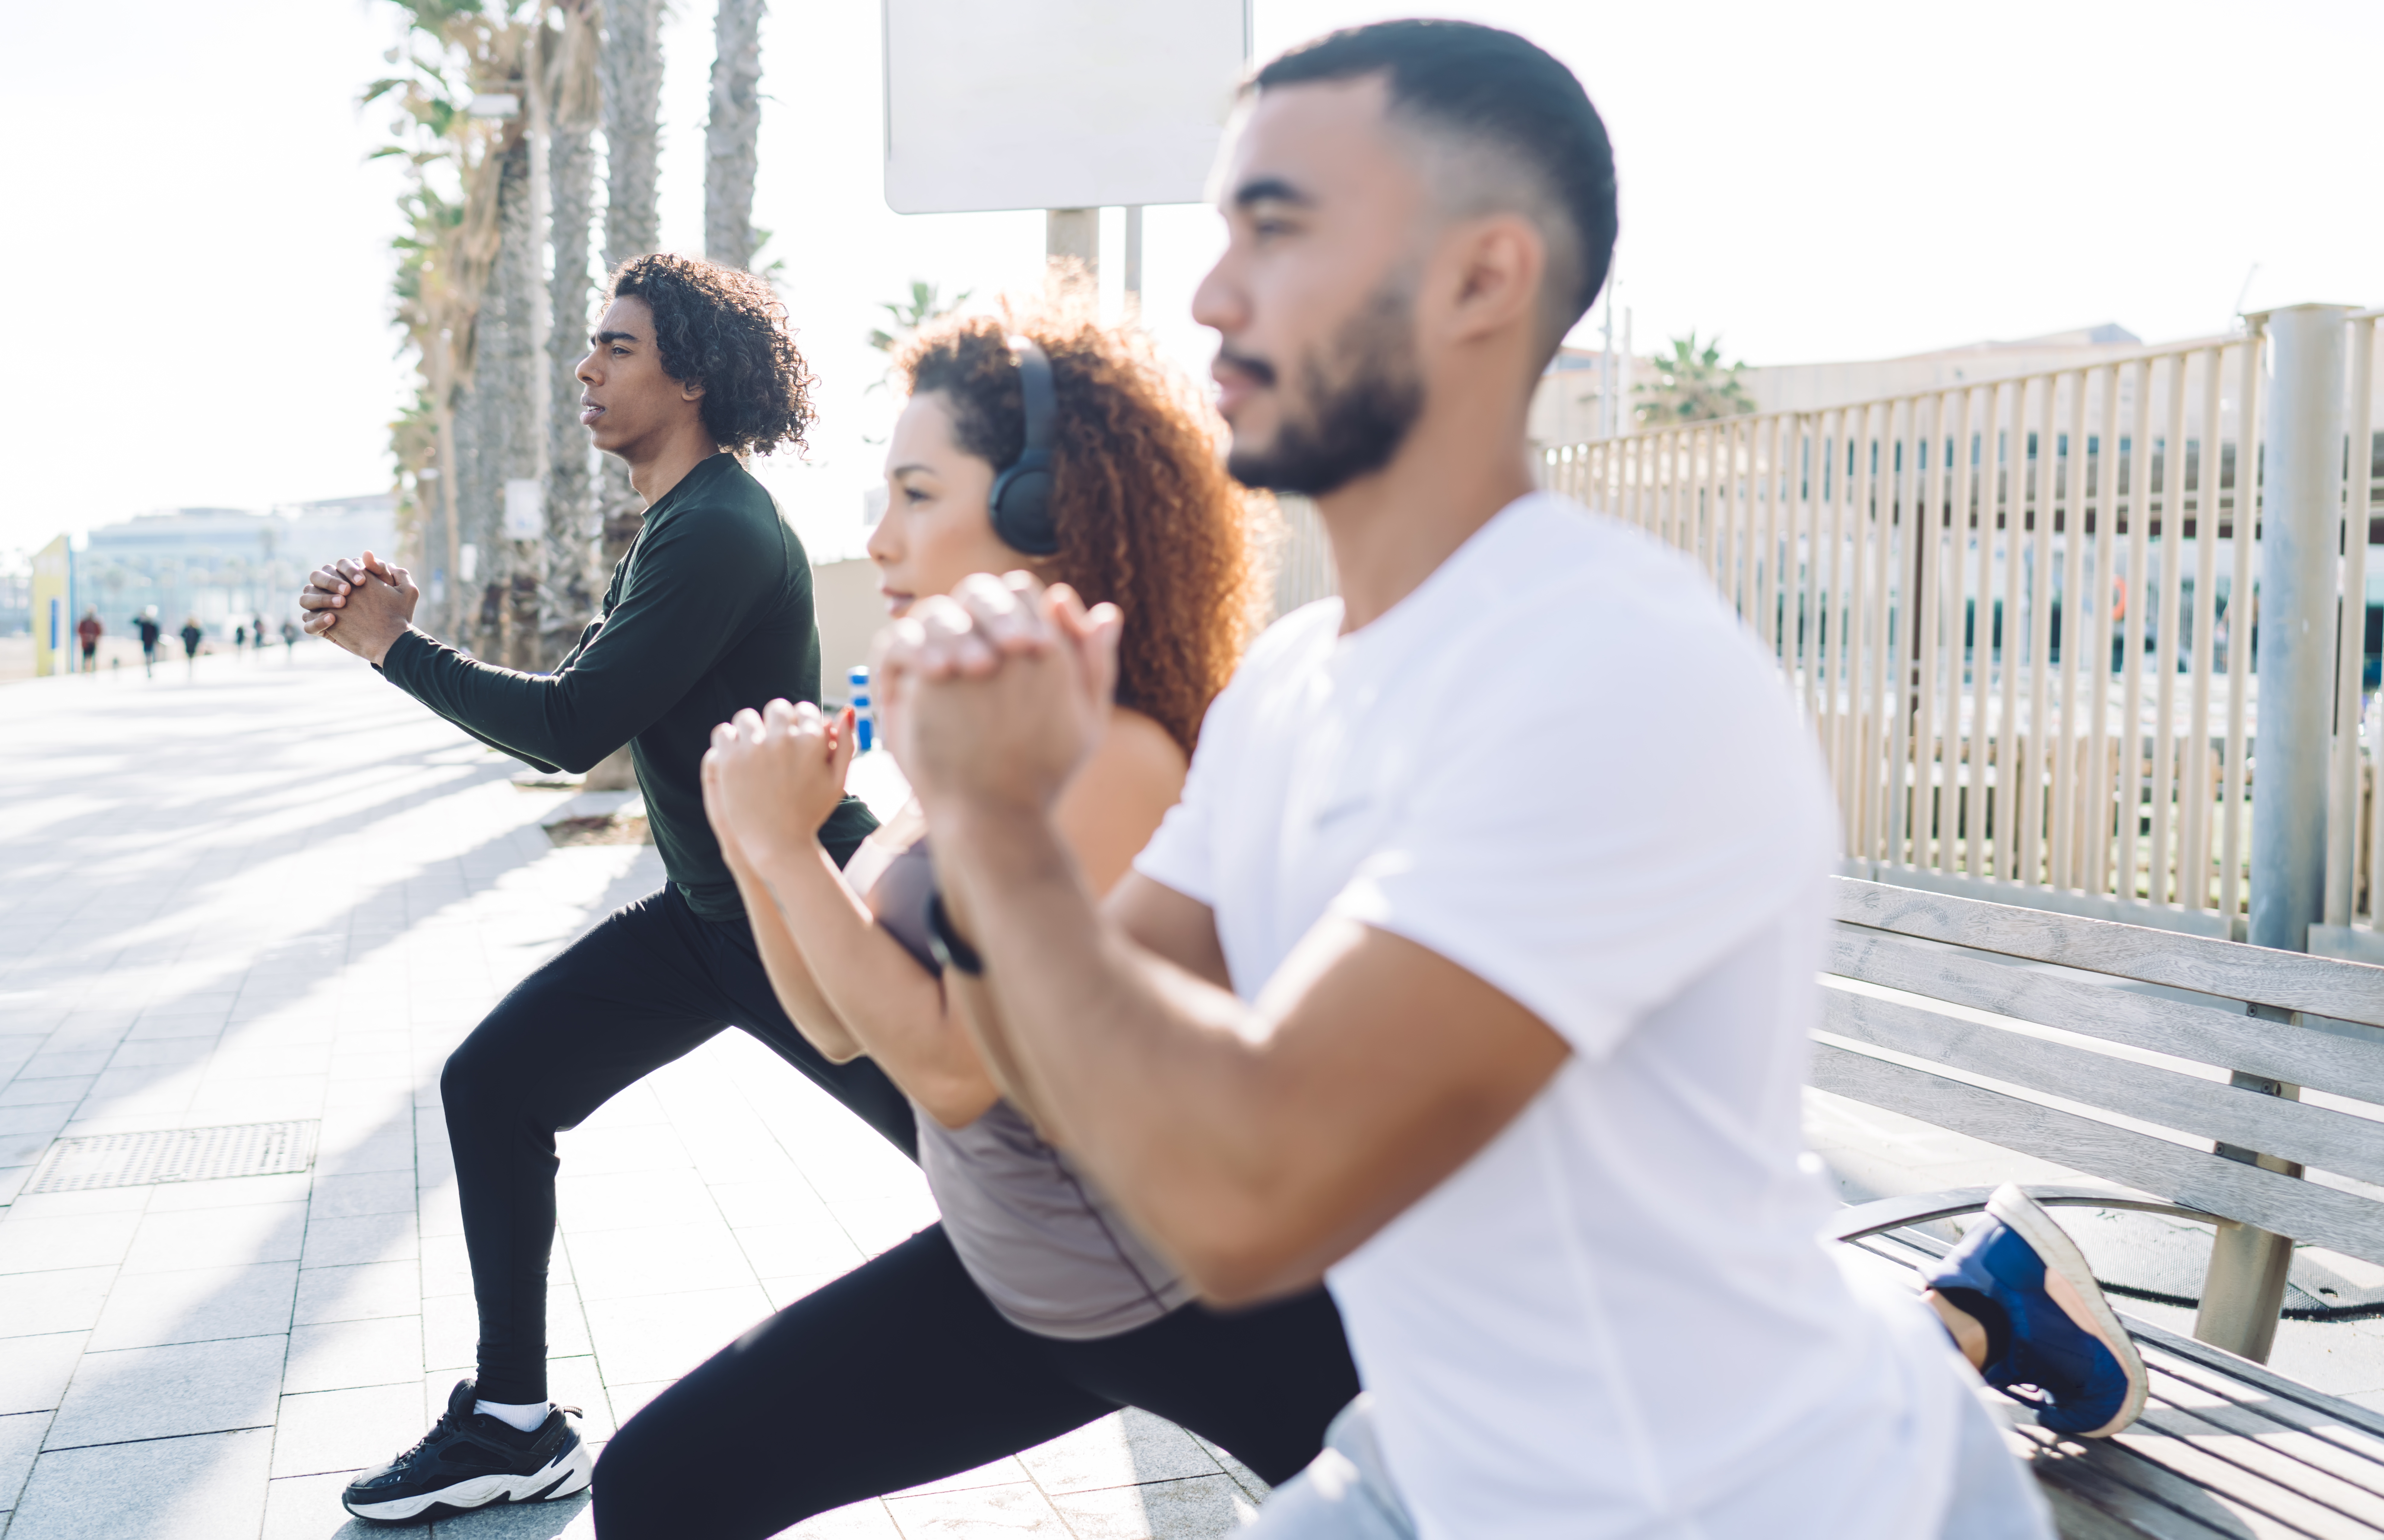 fitnessbet-group-workout-outdoor